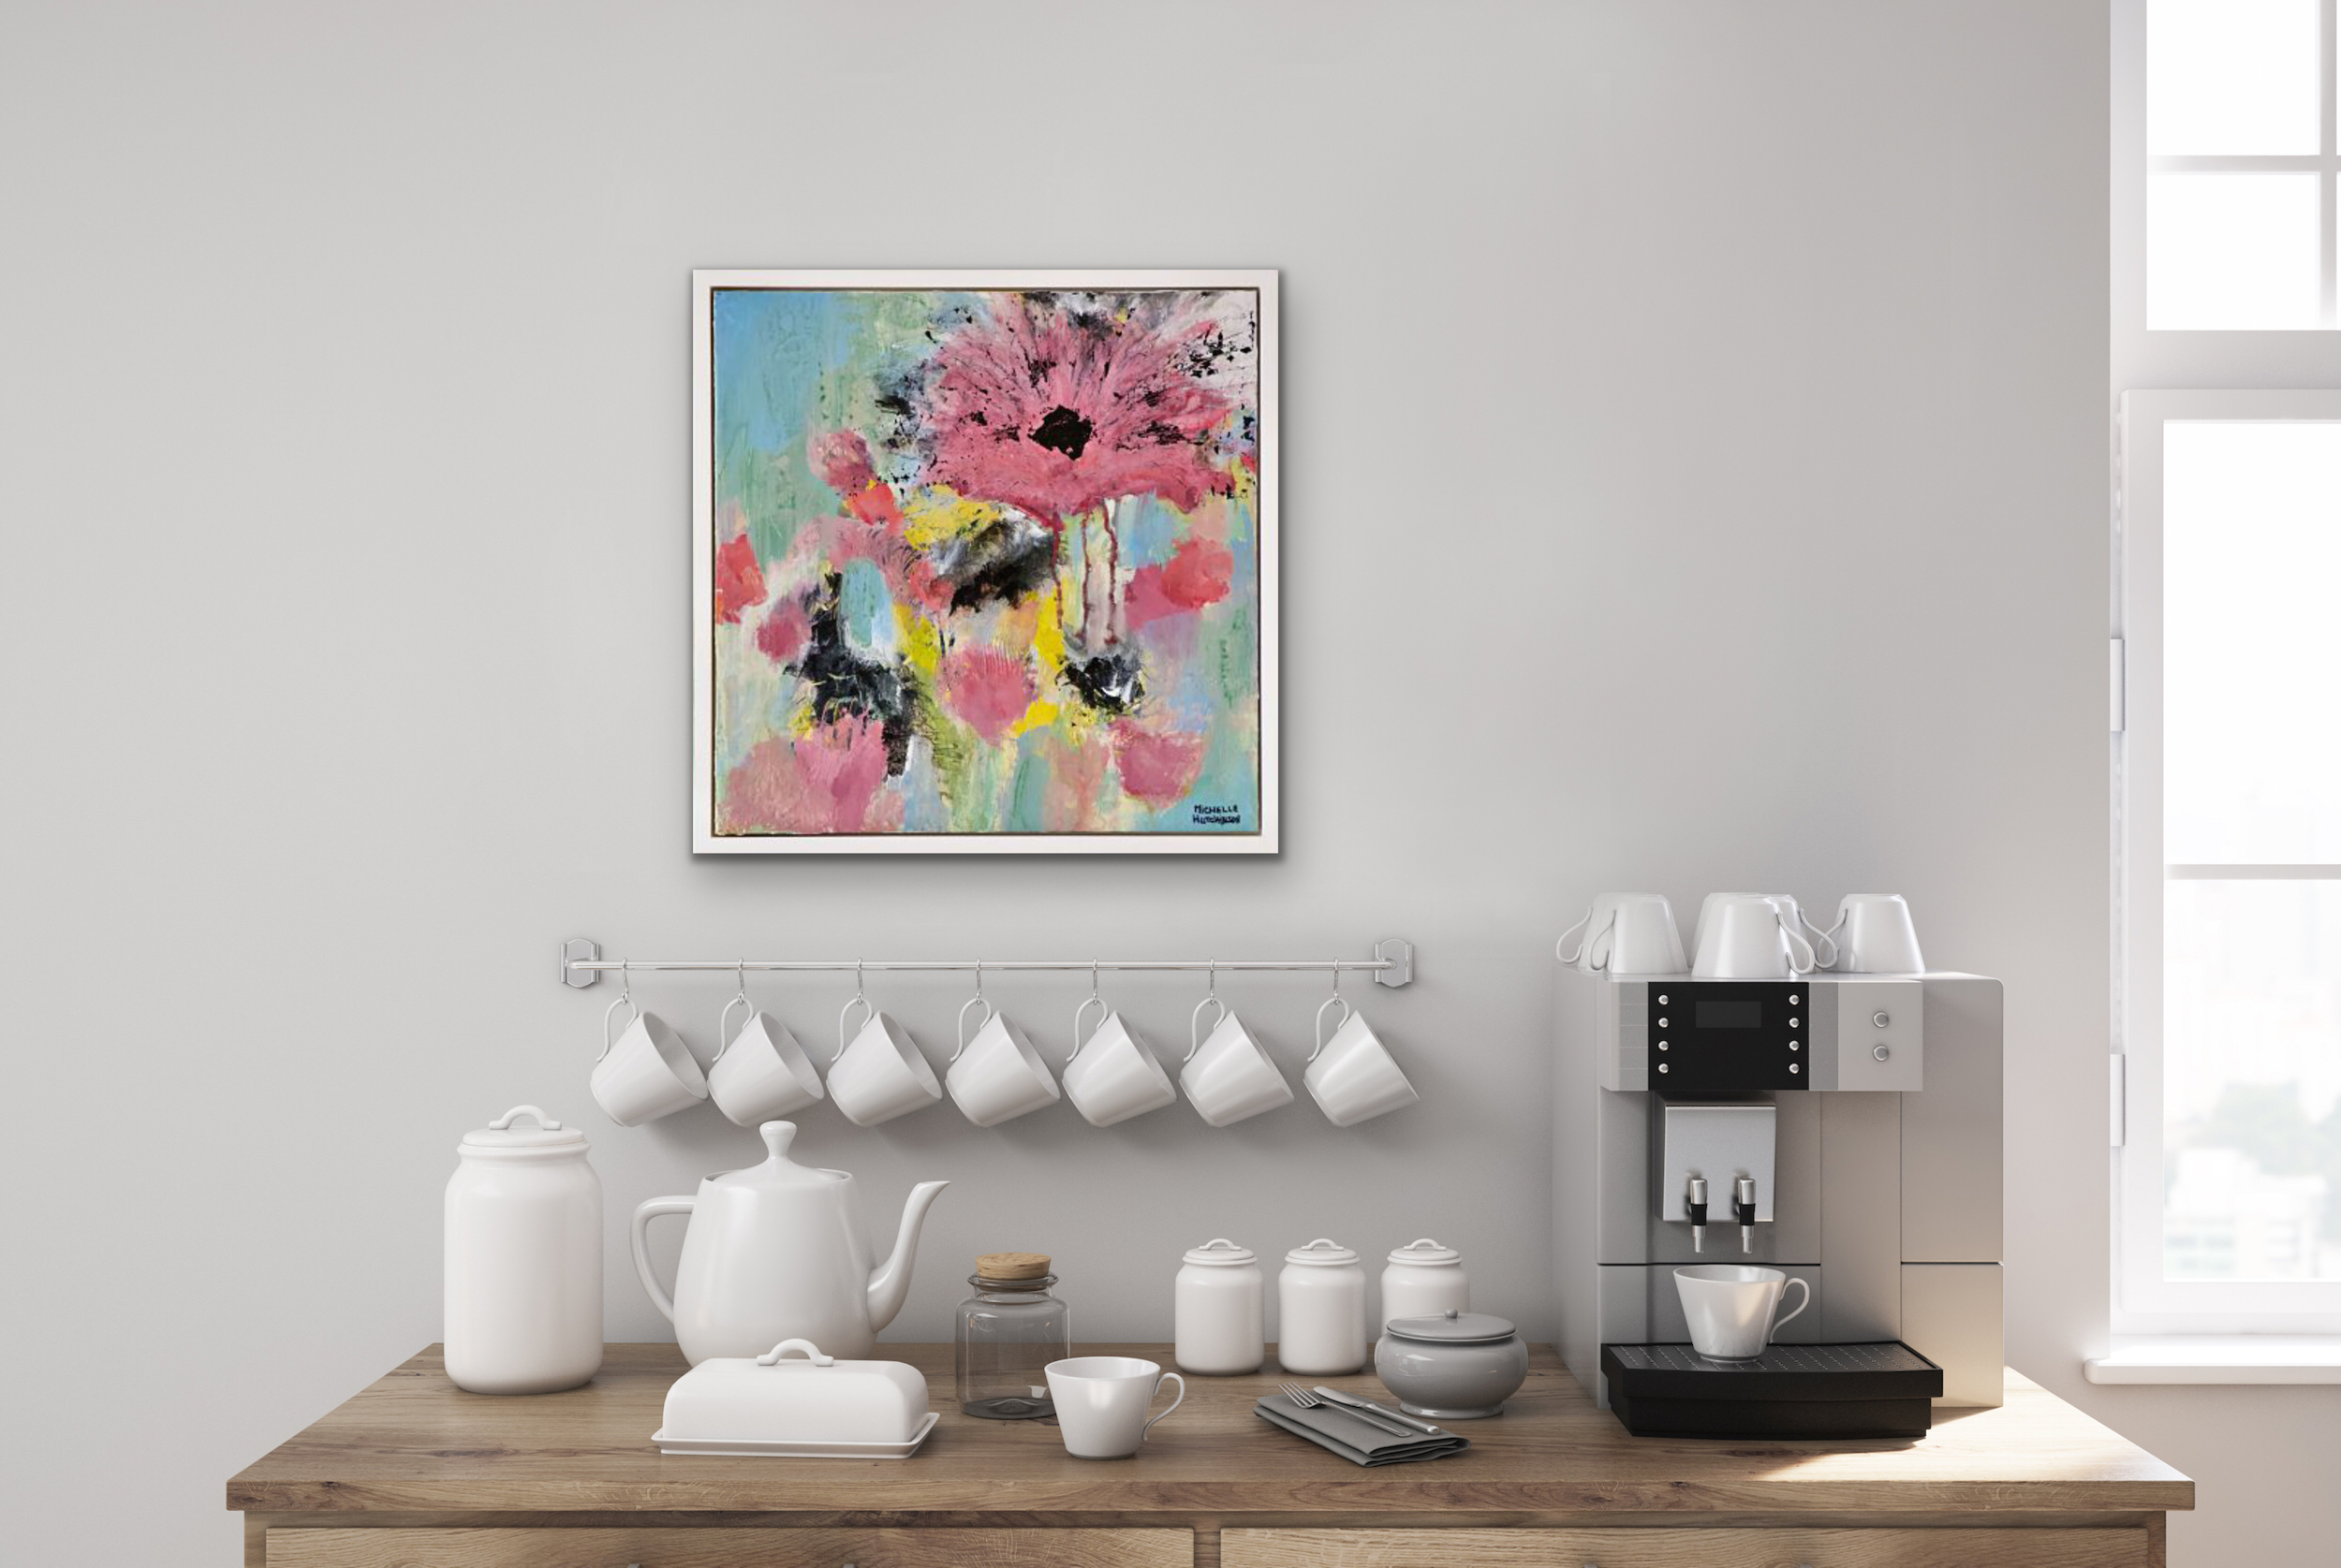 Funky large pink blossom and teal background invites a feeling of joy shared with friends. Displayed above a coffee bar.